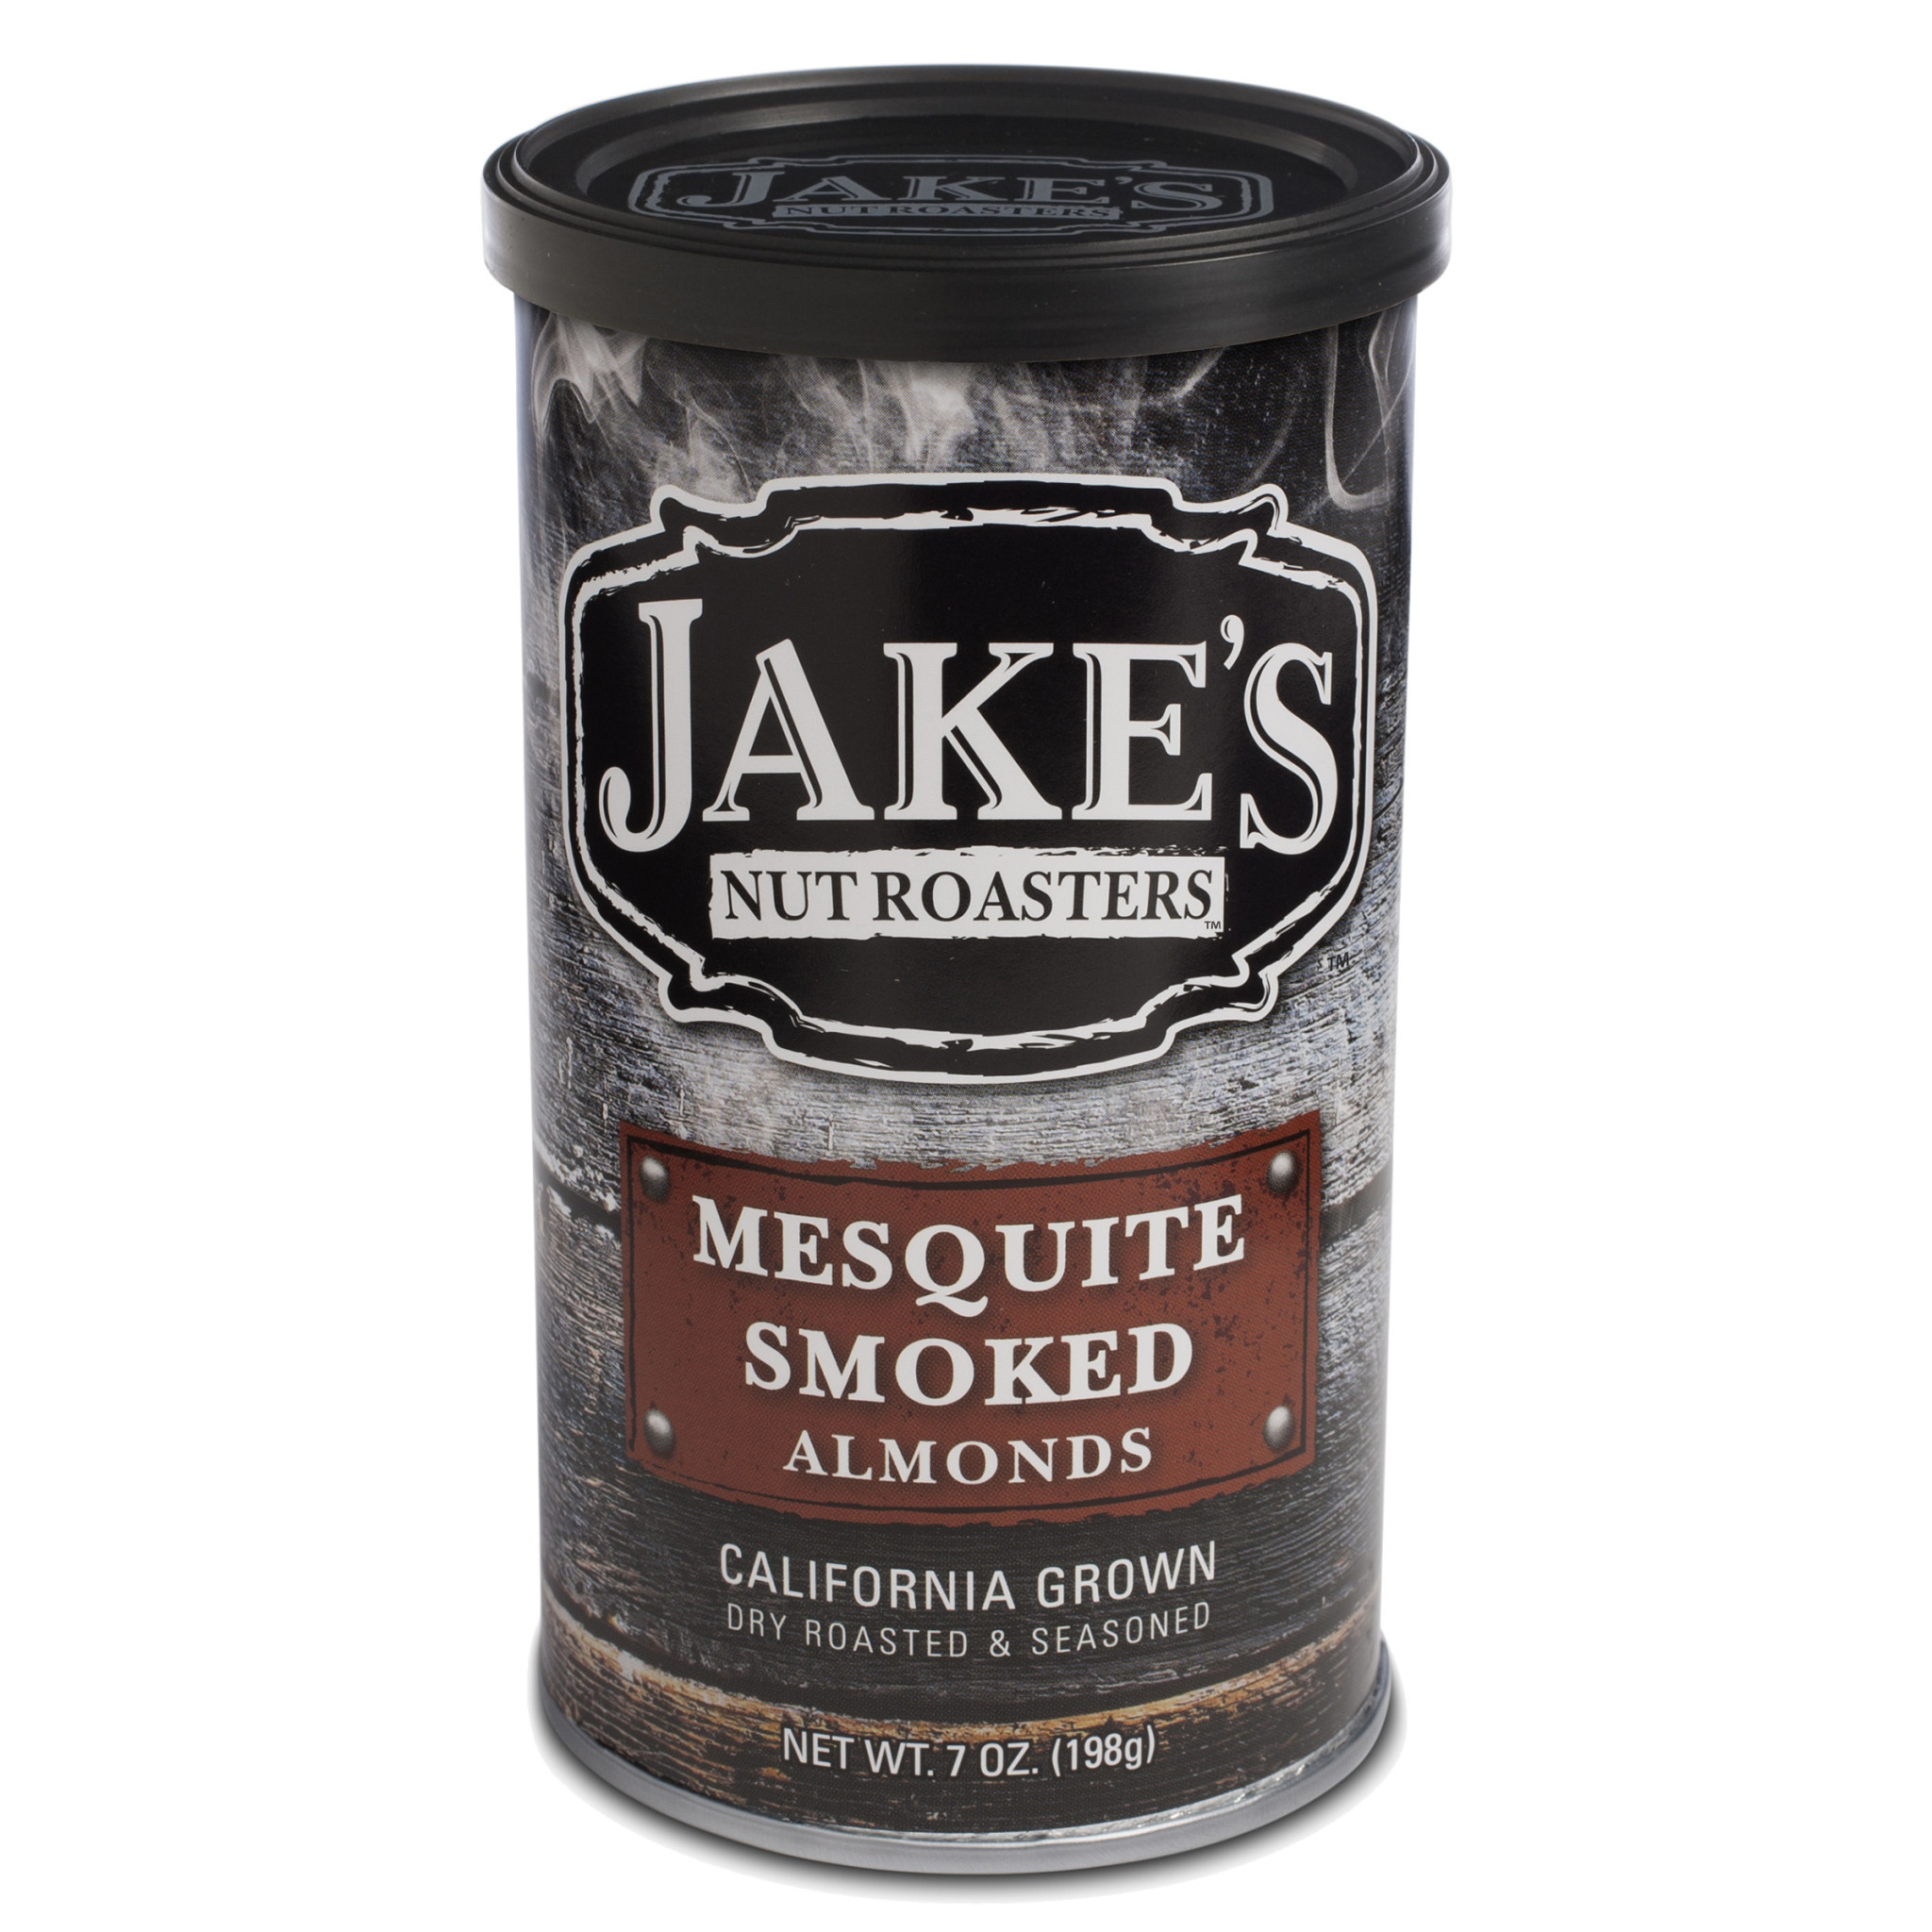 Jake's Mesquite Smoked Almonds 7oz. can, Newman, California